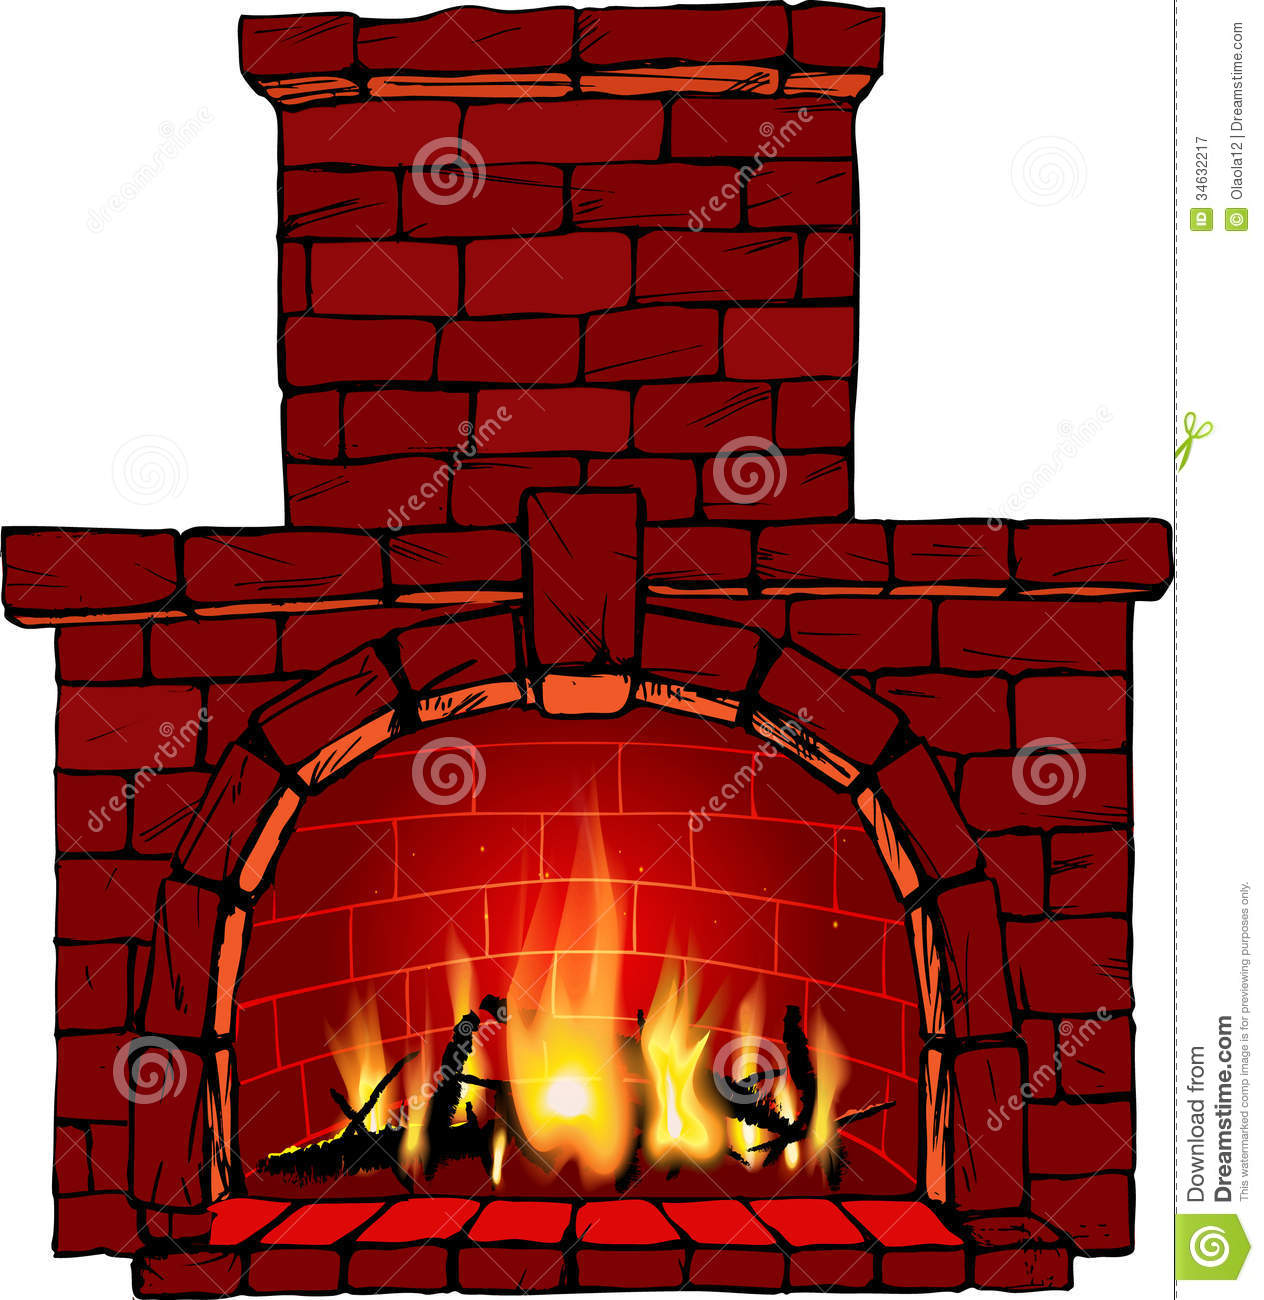 Fireplace clipart hearth Clipart Fireplace cliparts Fireplace Free